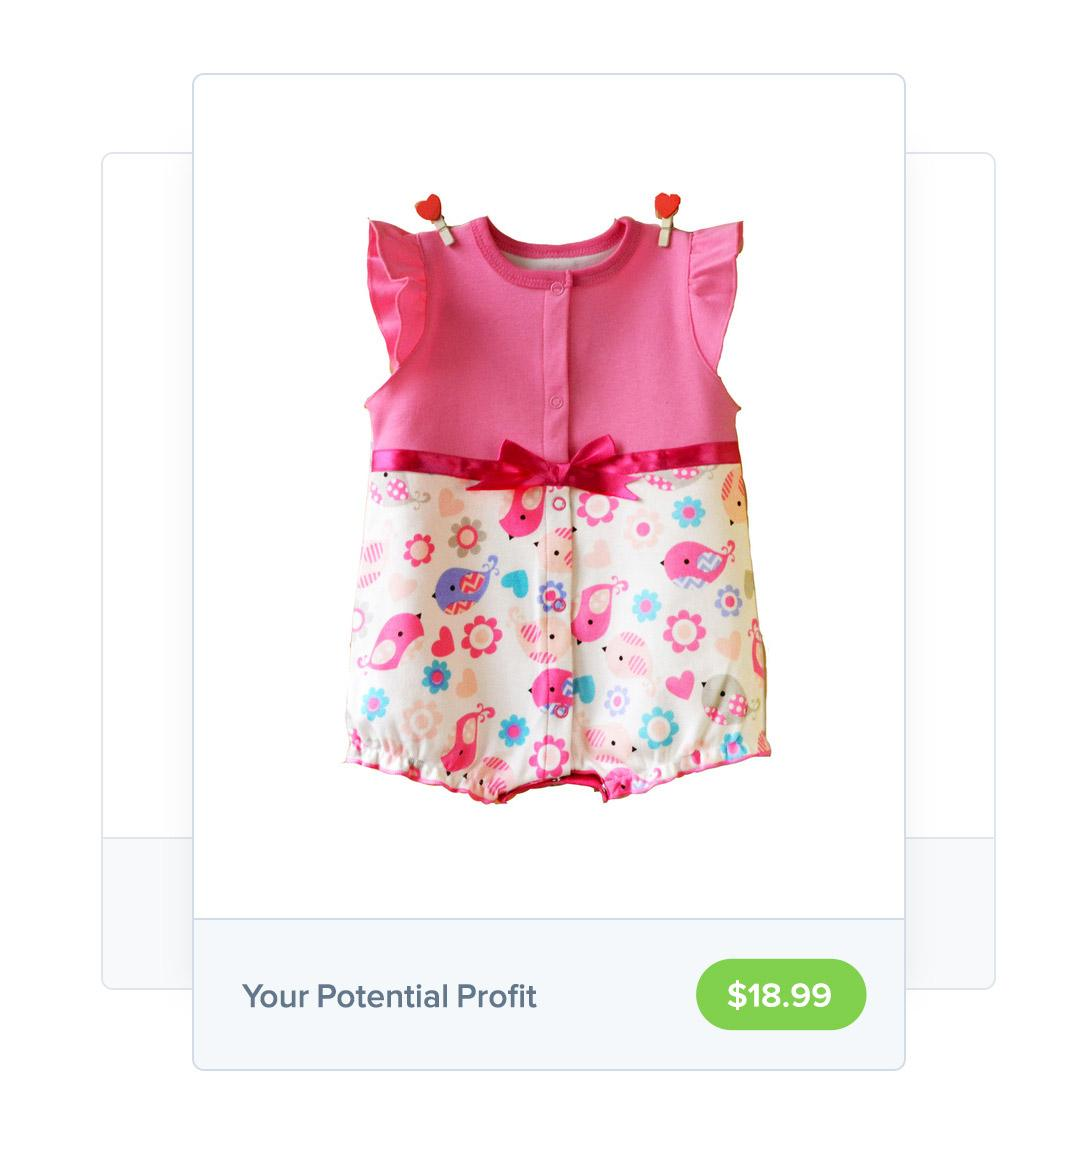 Baby Baby Online Find Baby Clothes Suppliers To Sell Online Start